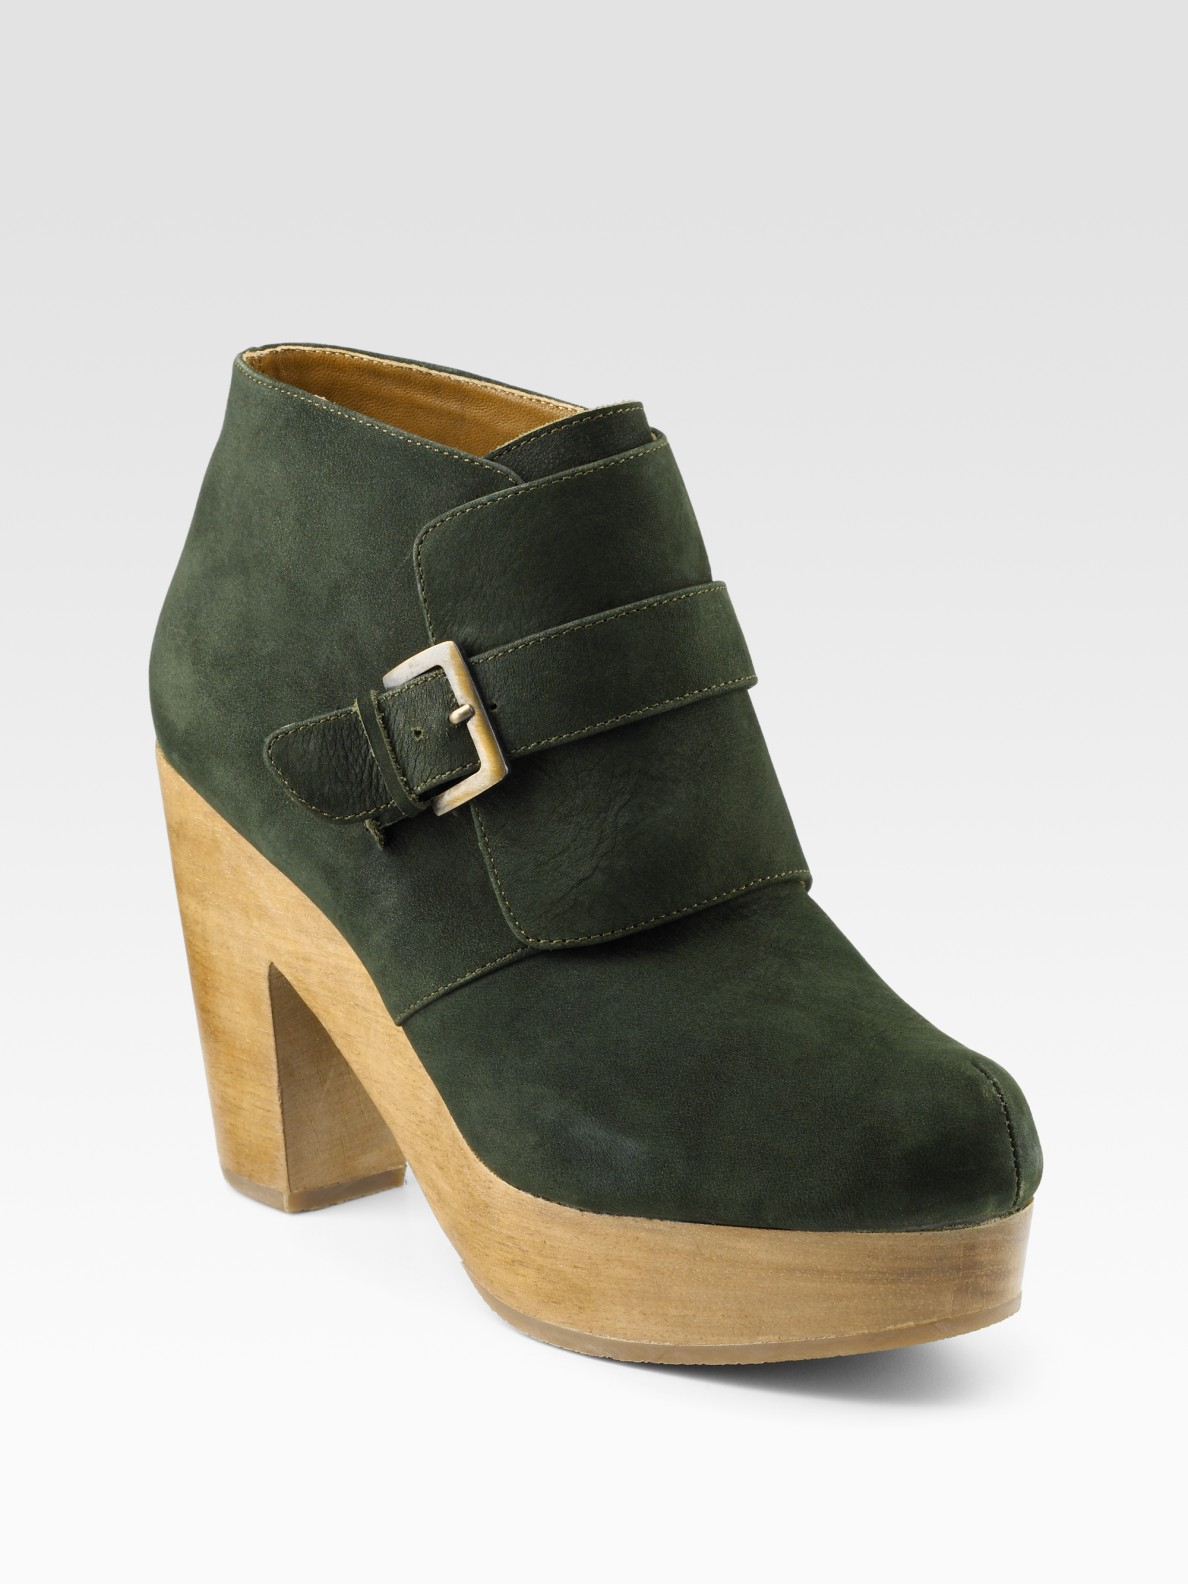 comey bernard clog bottom suede ankle boots in